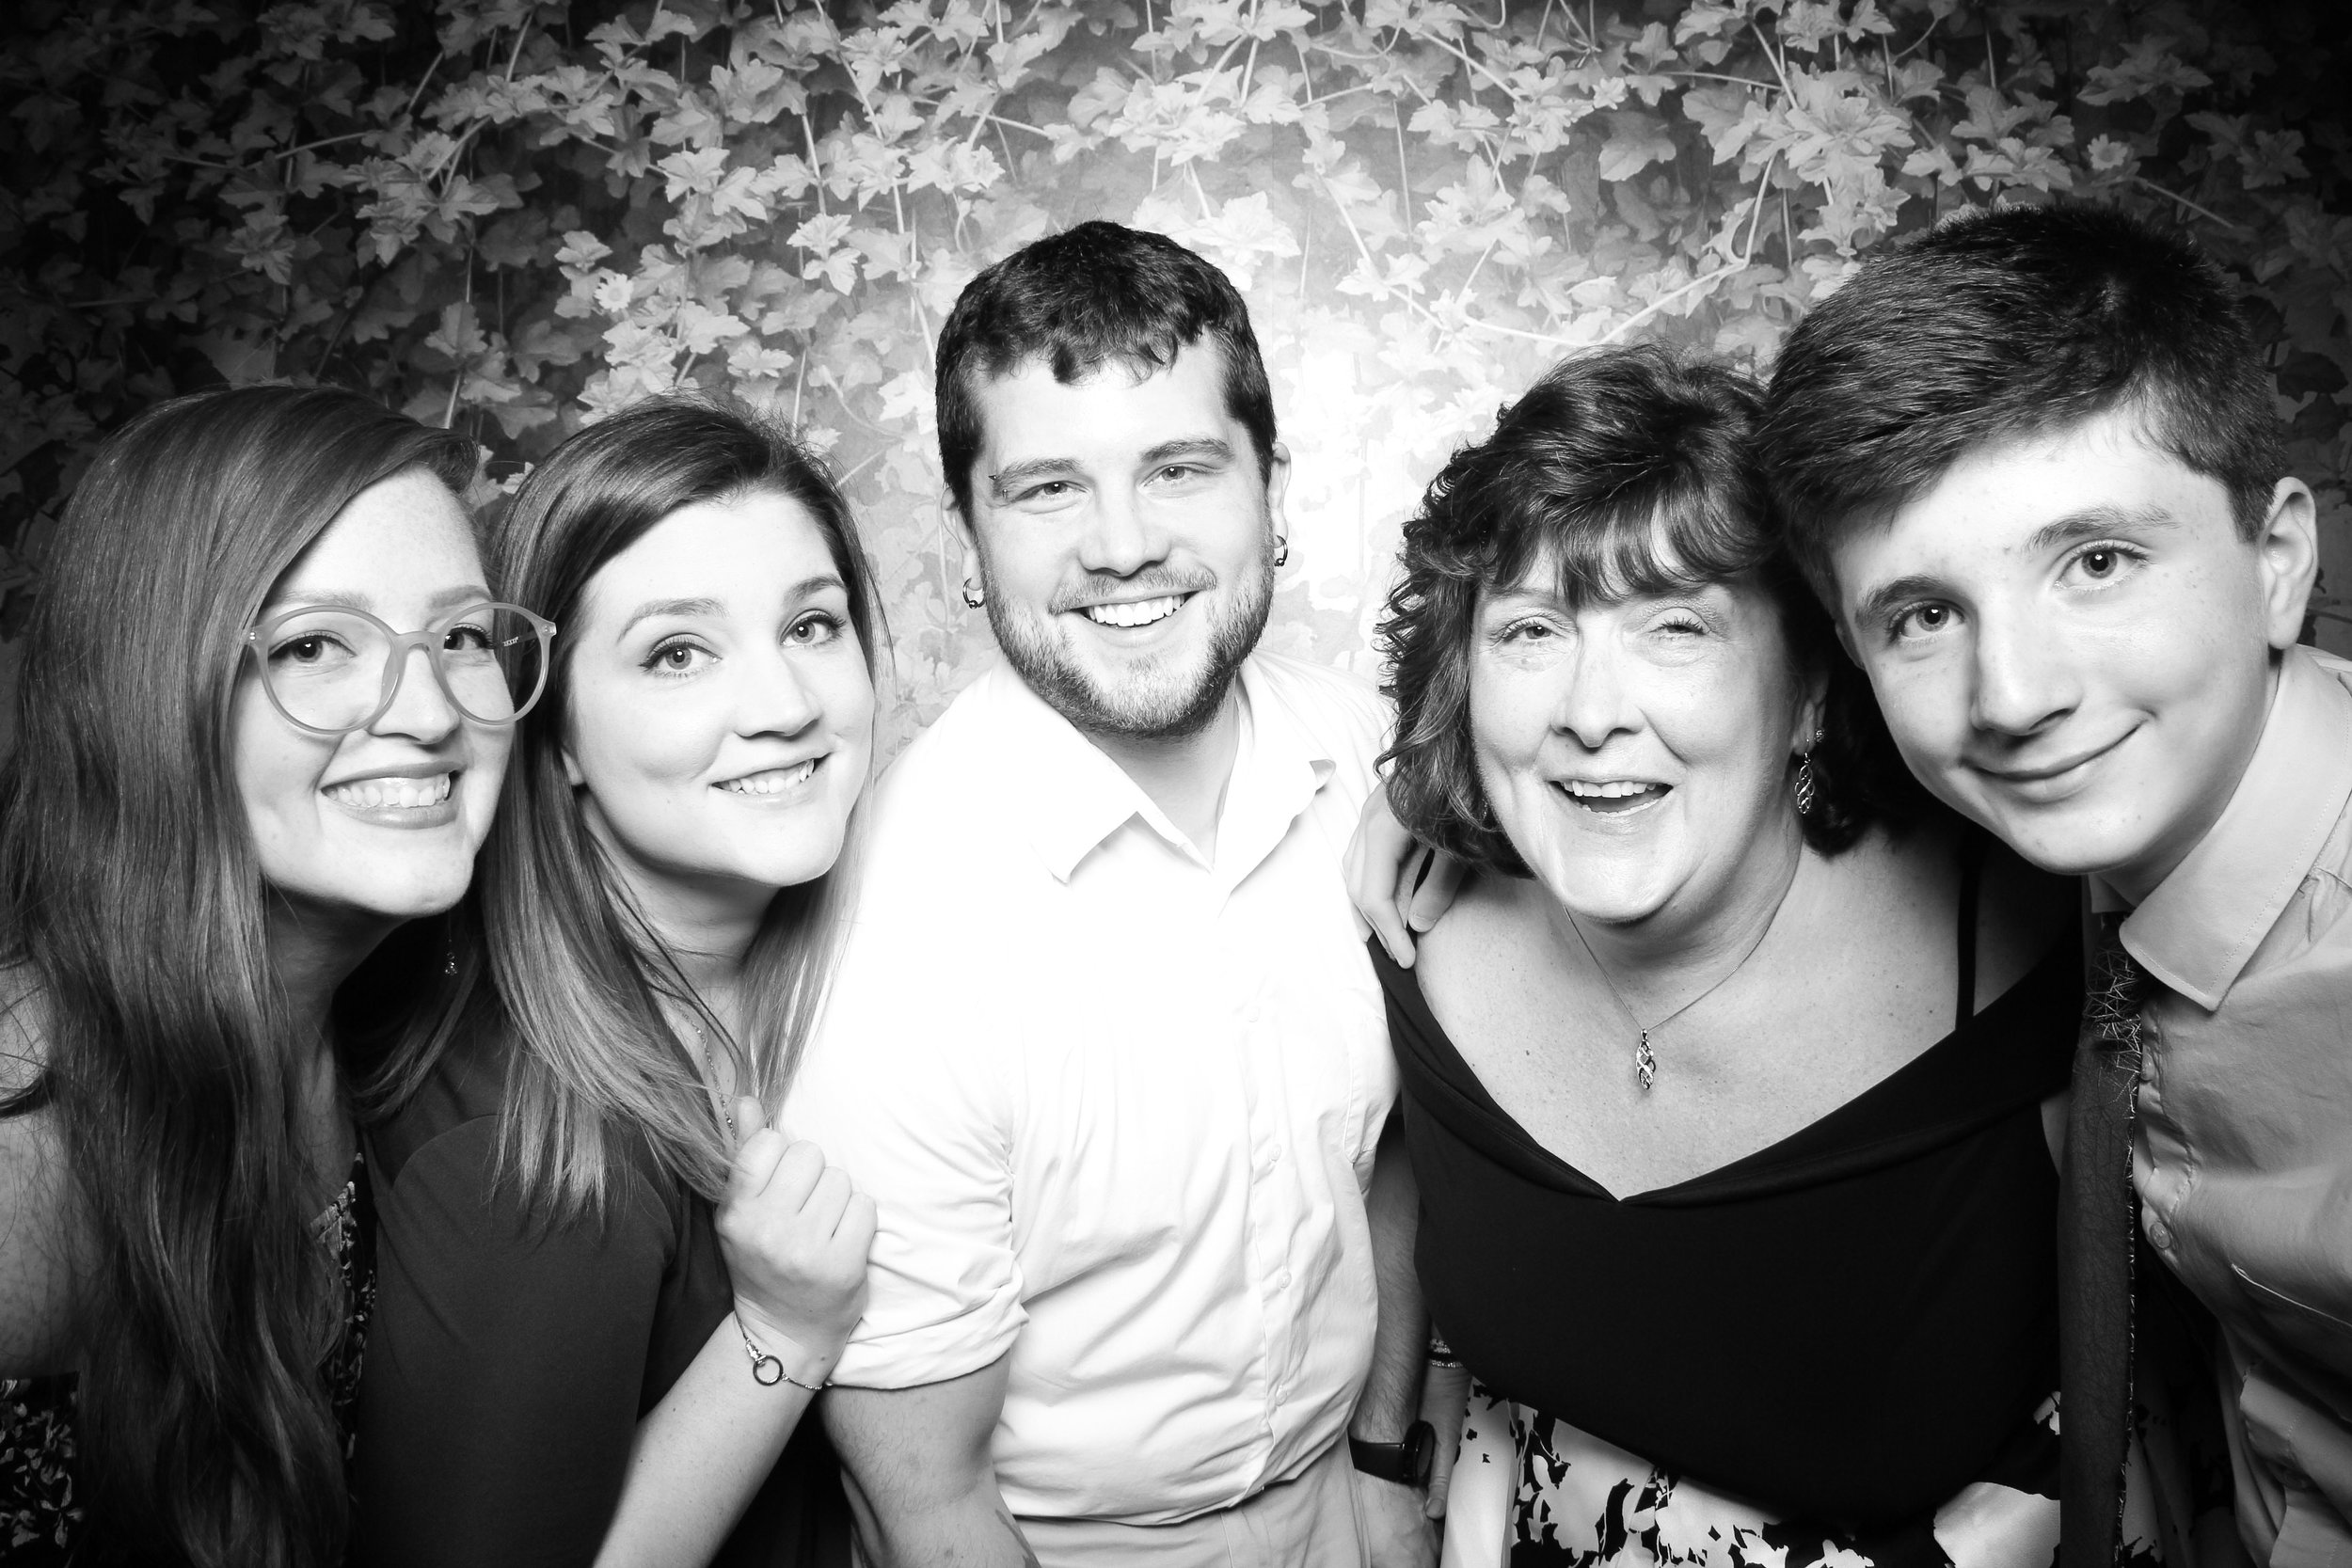 Randall_Oaks_Country_Club_Wedding_West_Dundee_Photo_Booth_03.jpg